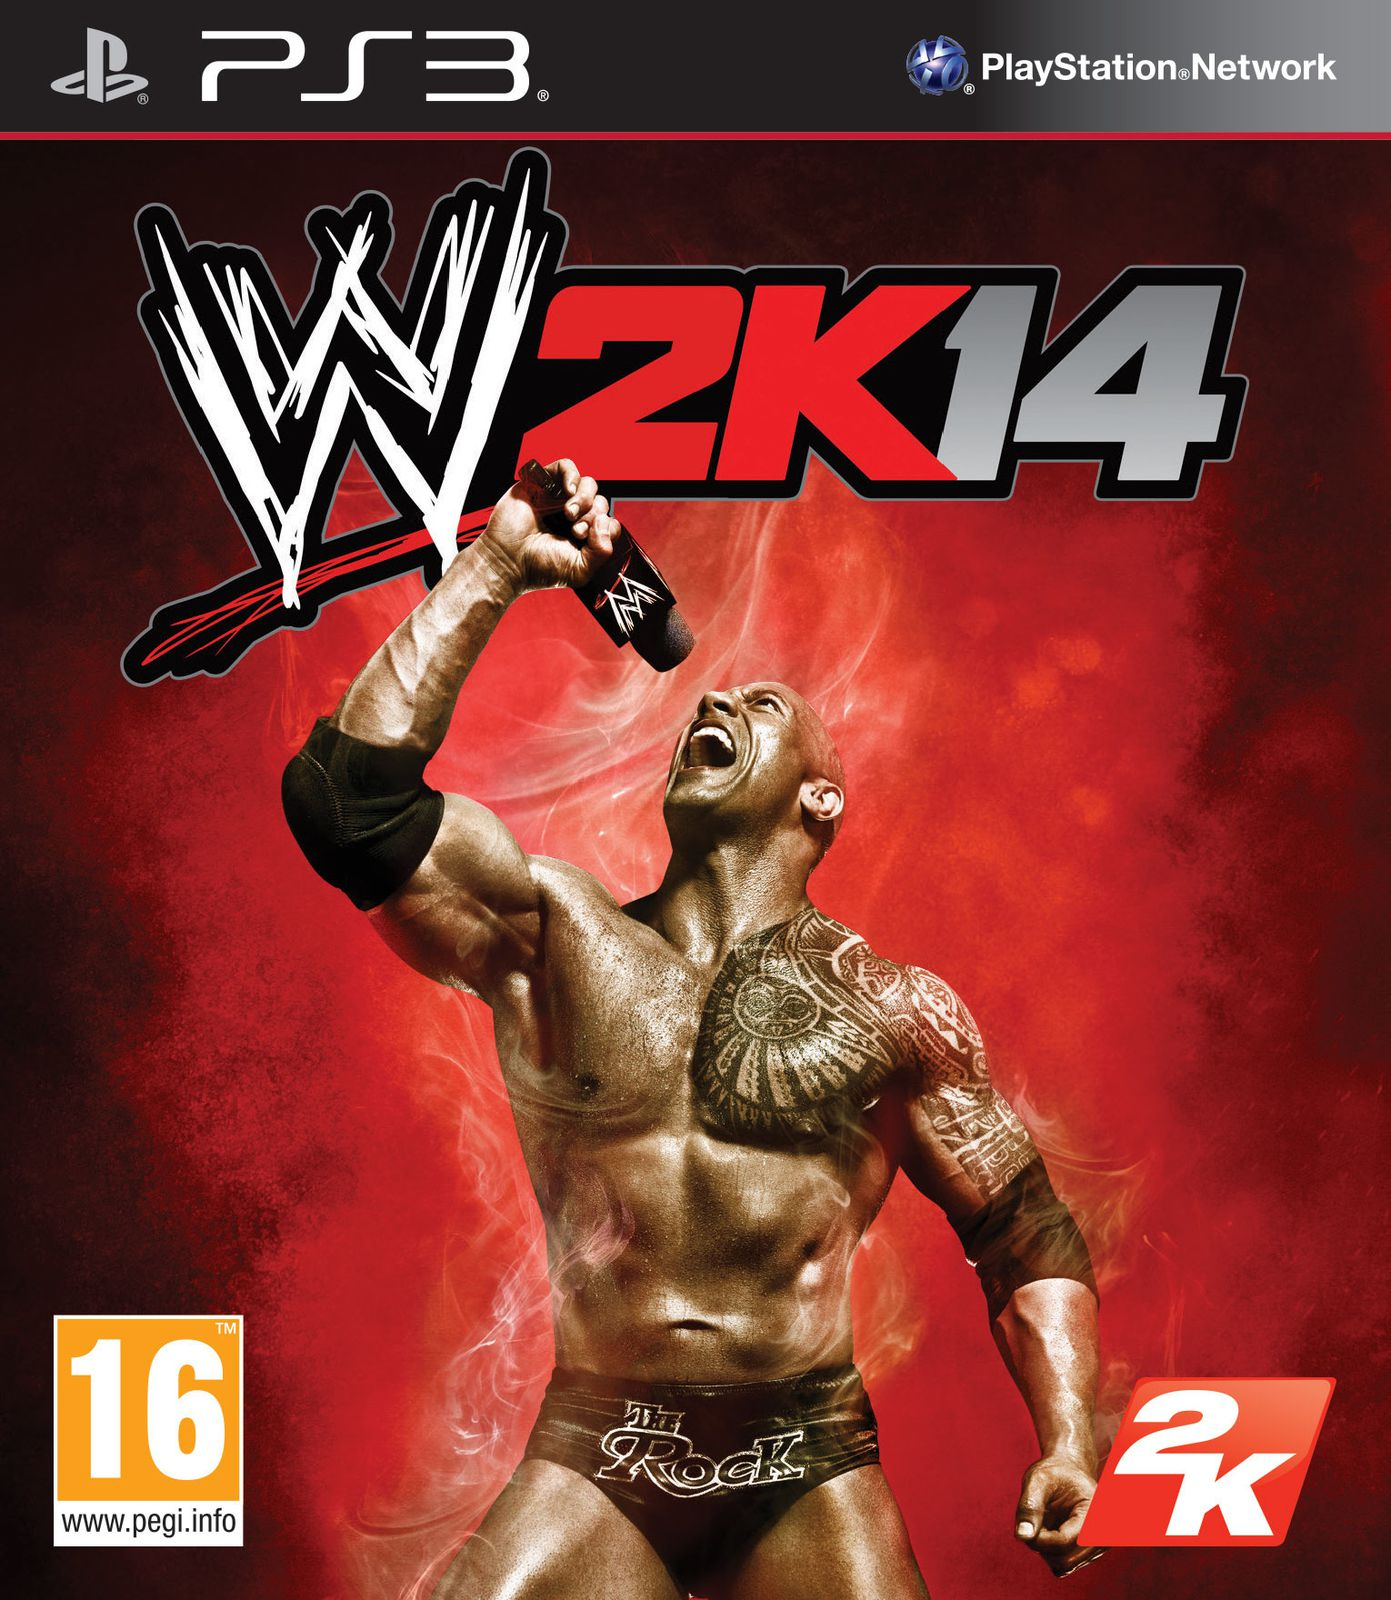 wwe_2k14_fob_ps3_pegi.jpg